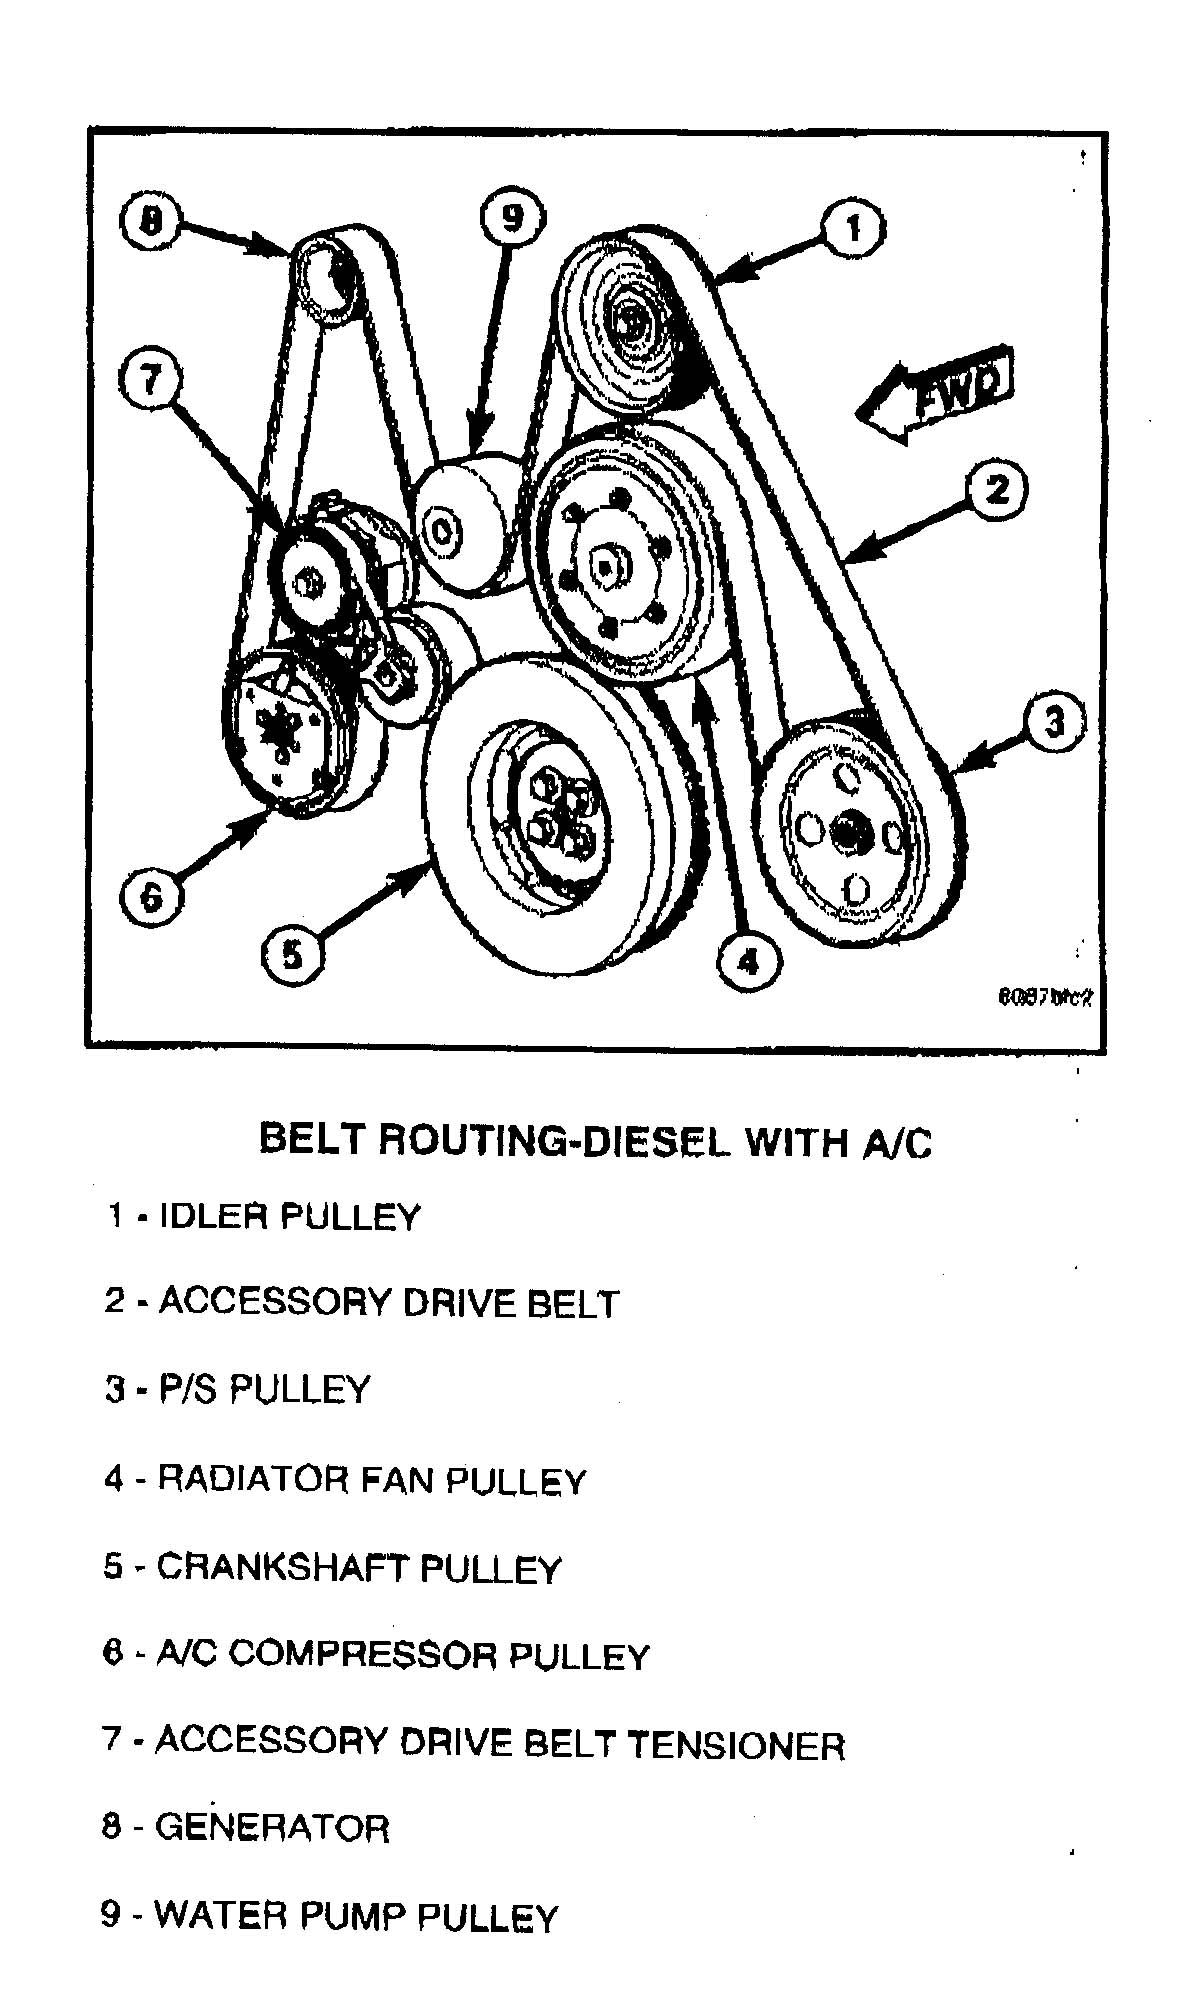 6.7 Belt Routing Diagram - Dodge Diesel - Diesel Truck Resource Forums  Dodge Diesel, Diesel